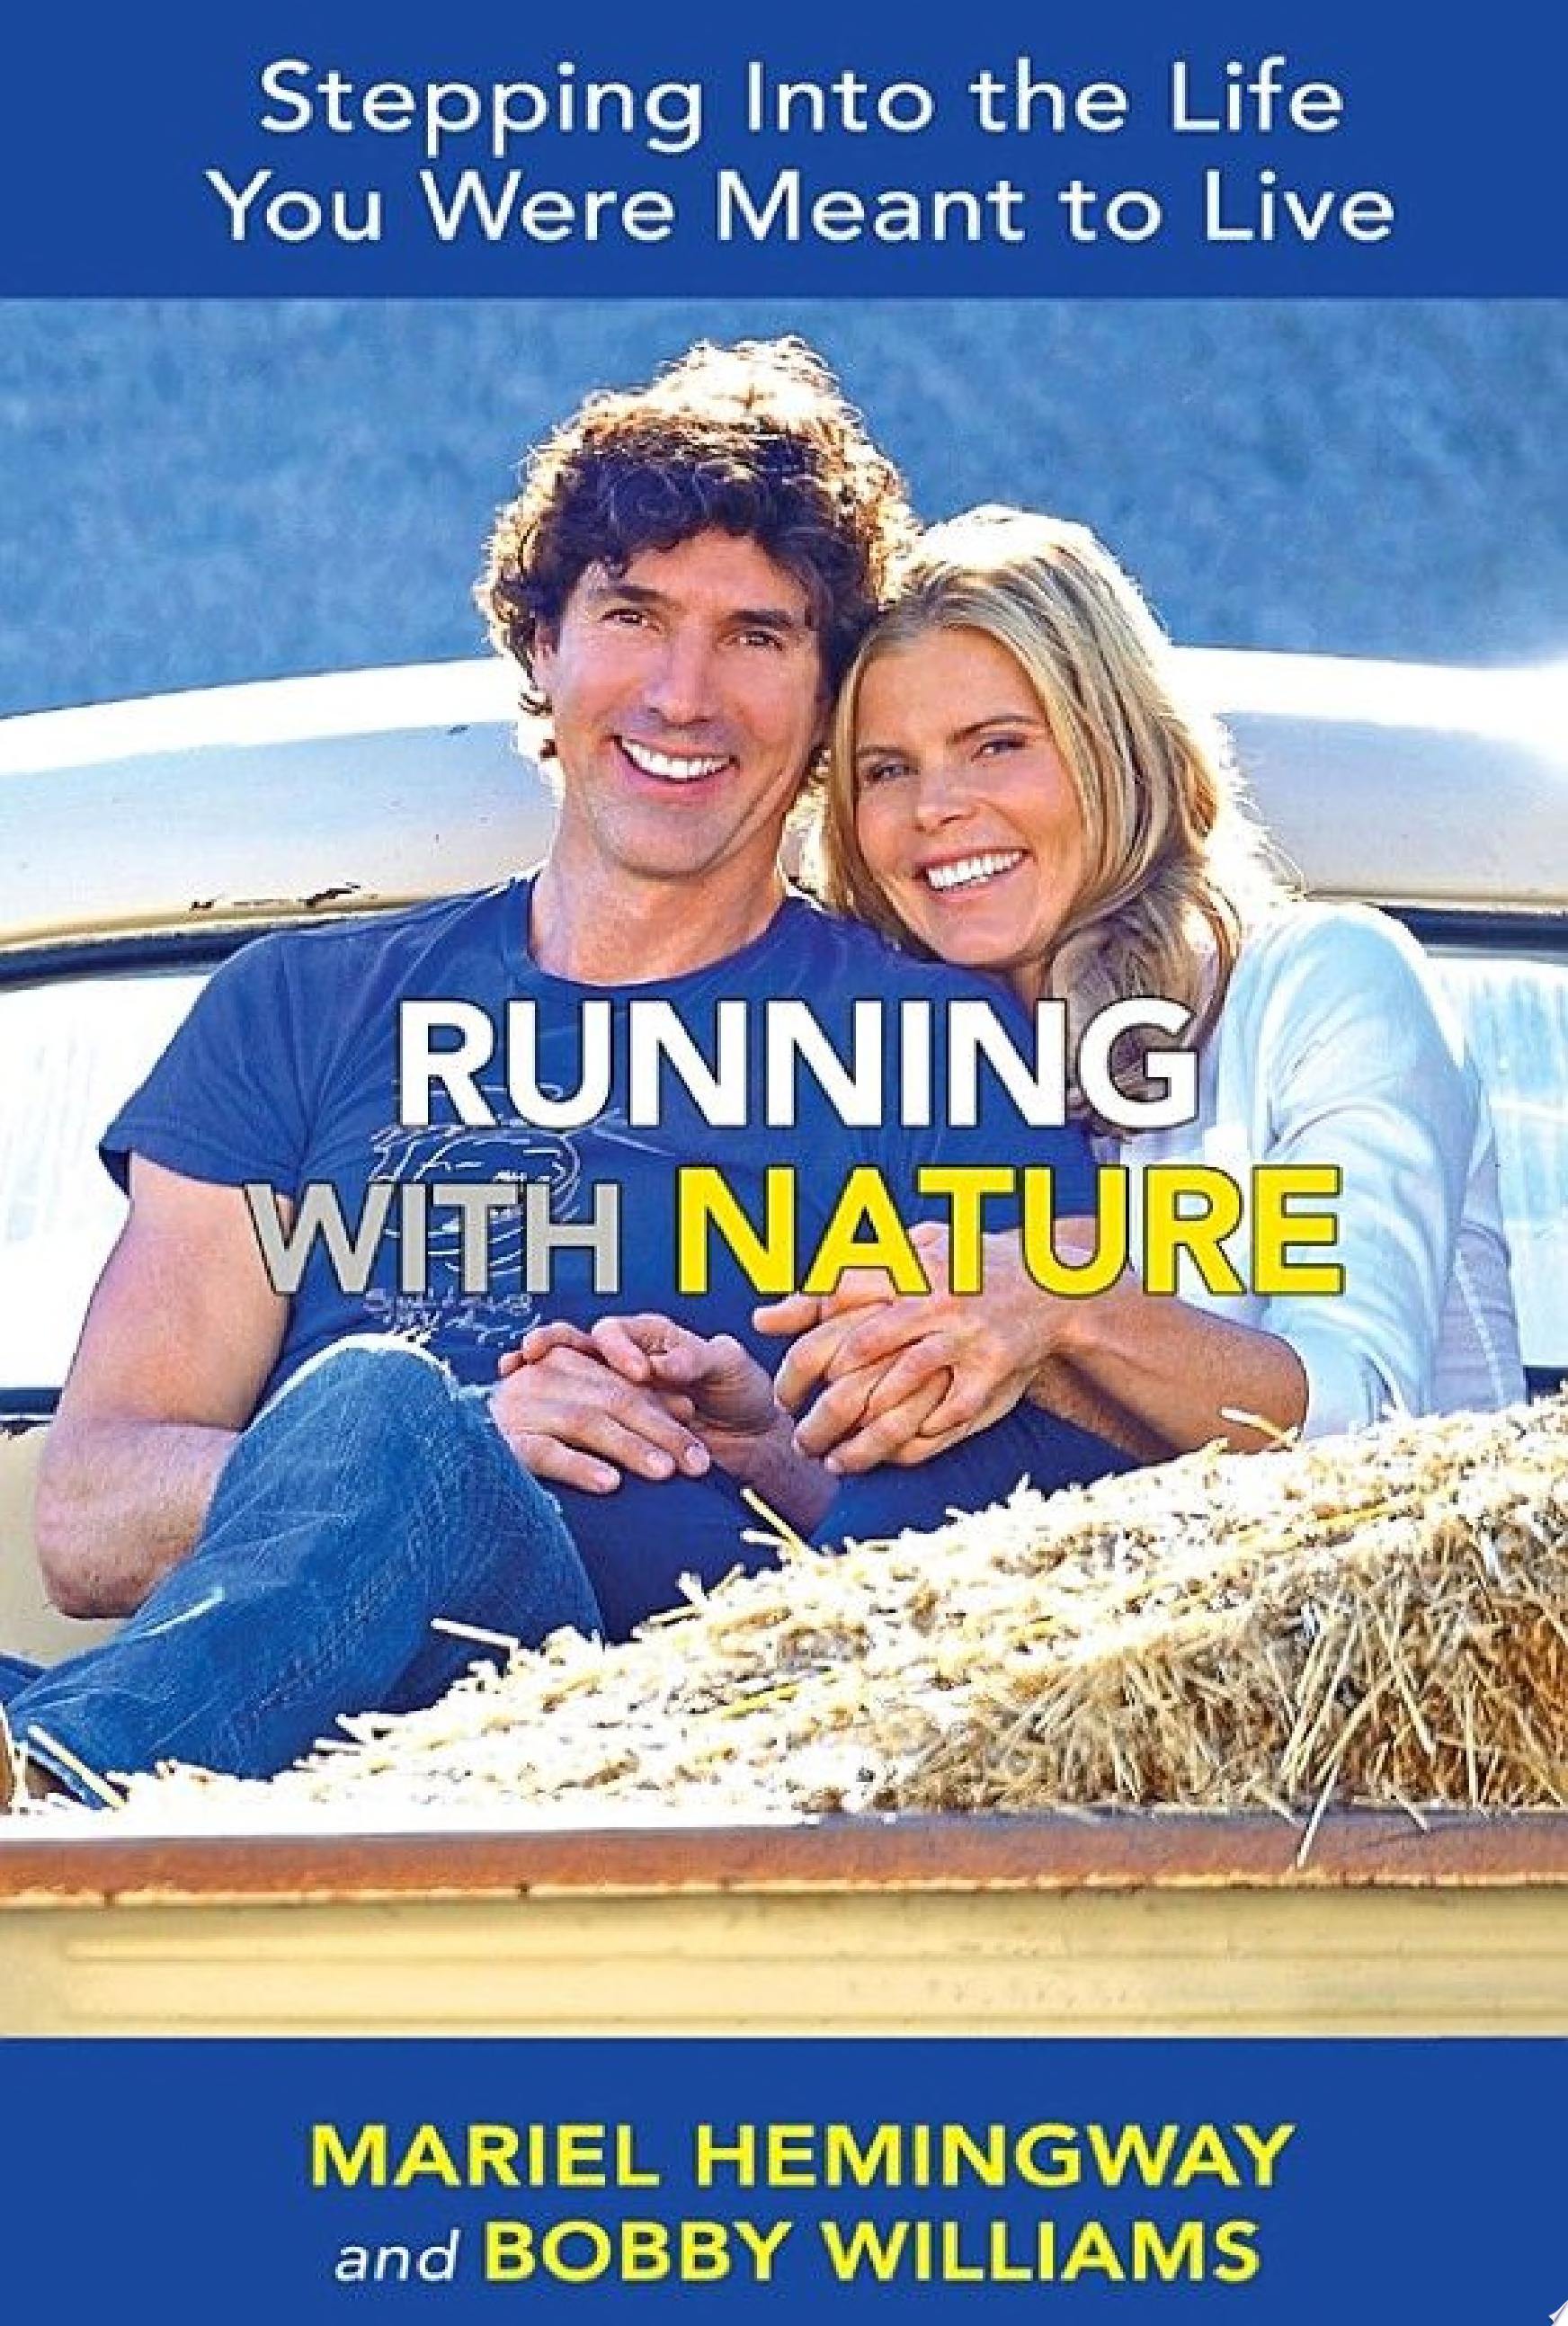 Running with Nature